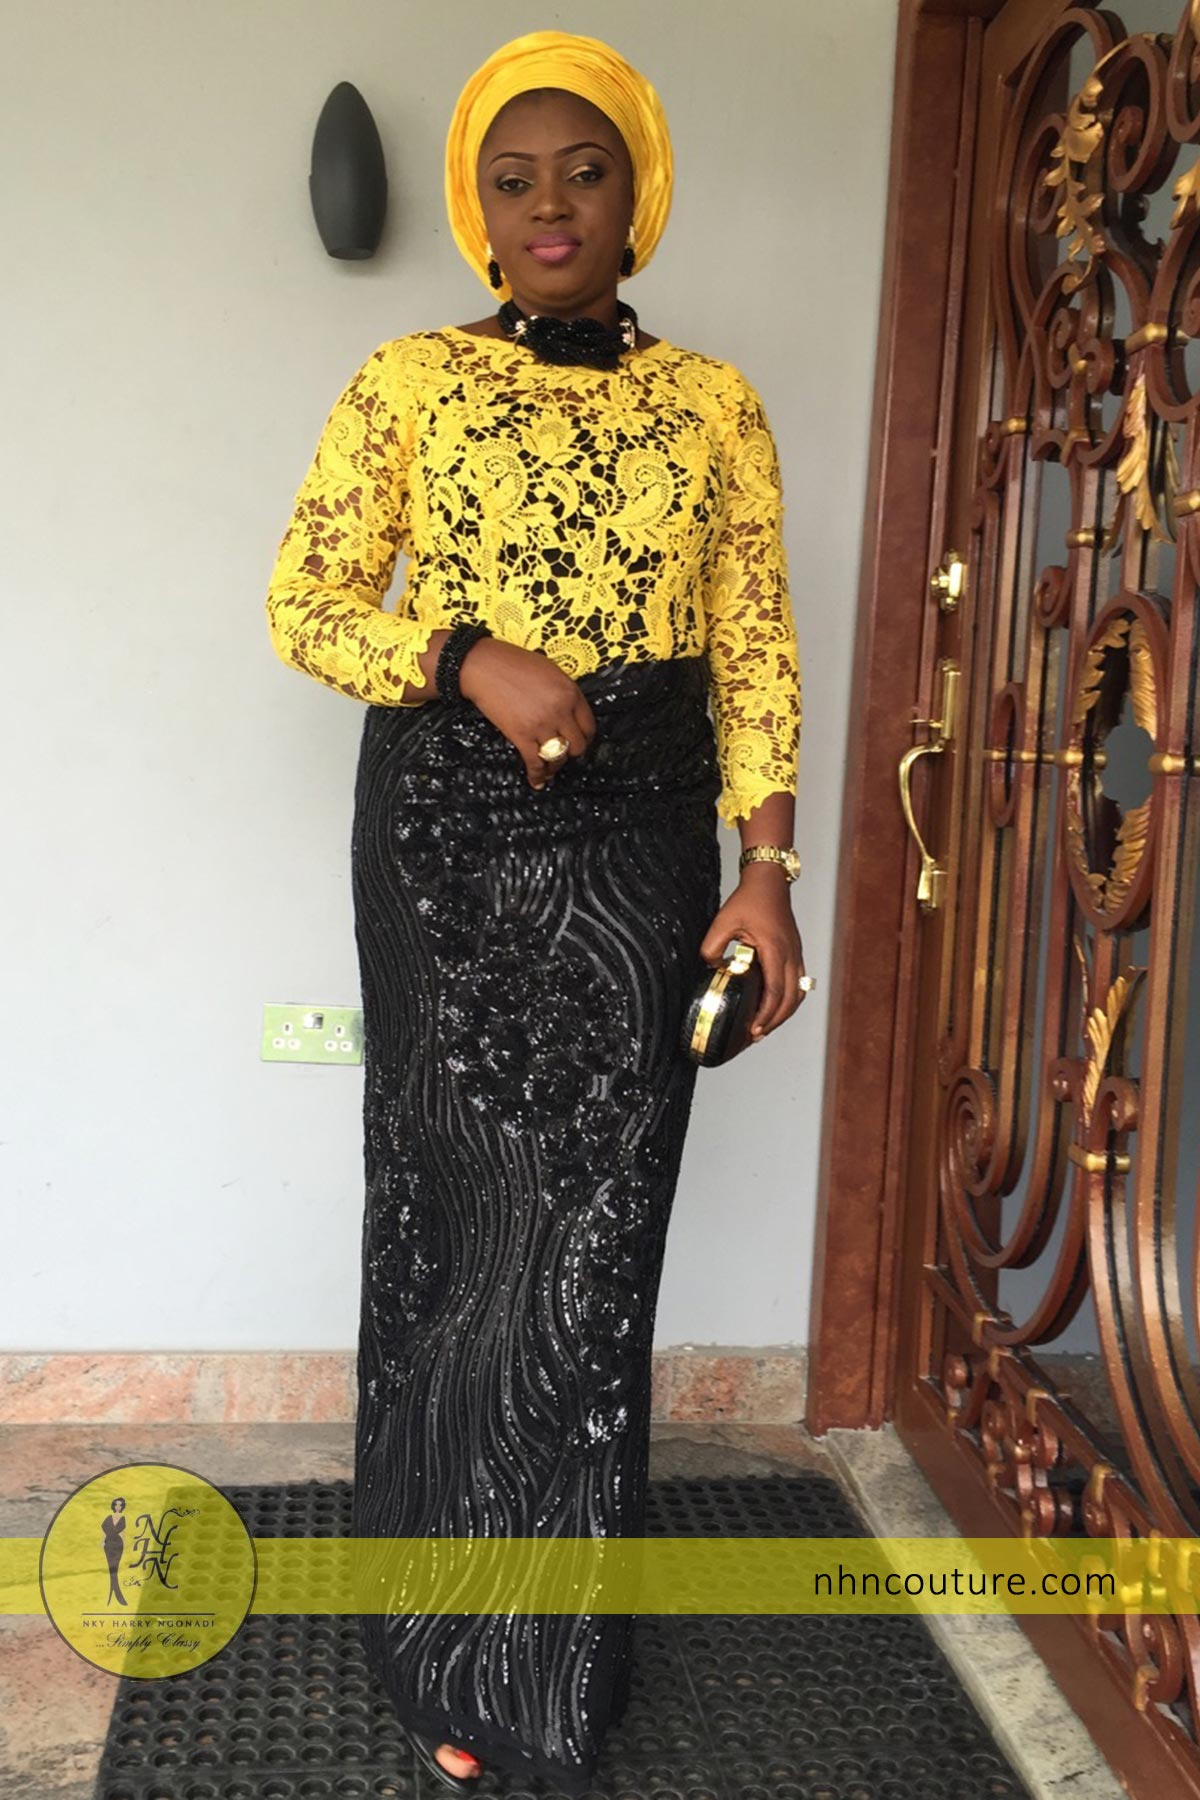 spotted-in-NHN-Couture_Yellow-and-Black-top-and-wrapper_Asoebi_Nigerian-Traditional-Attire